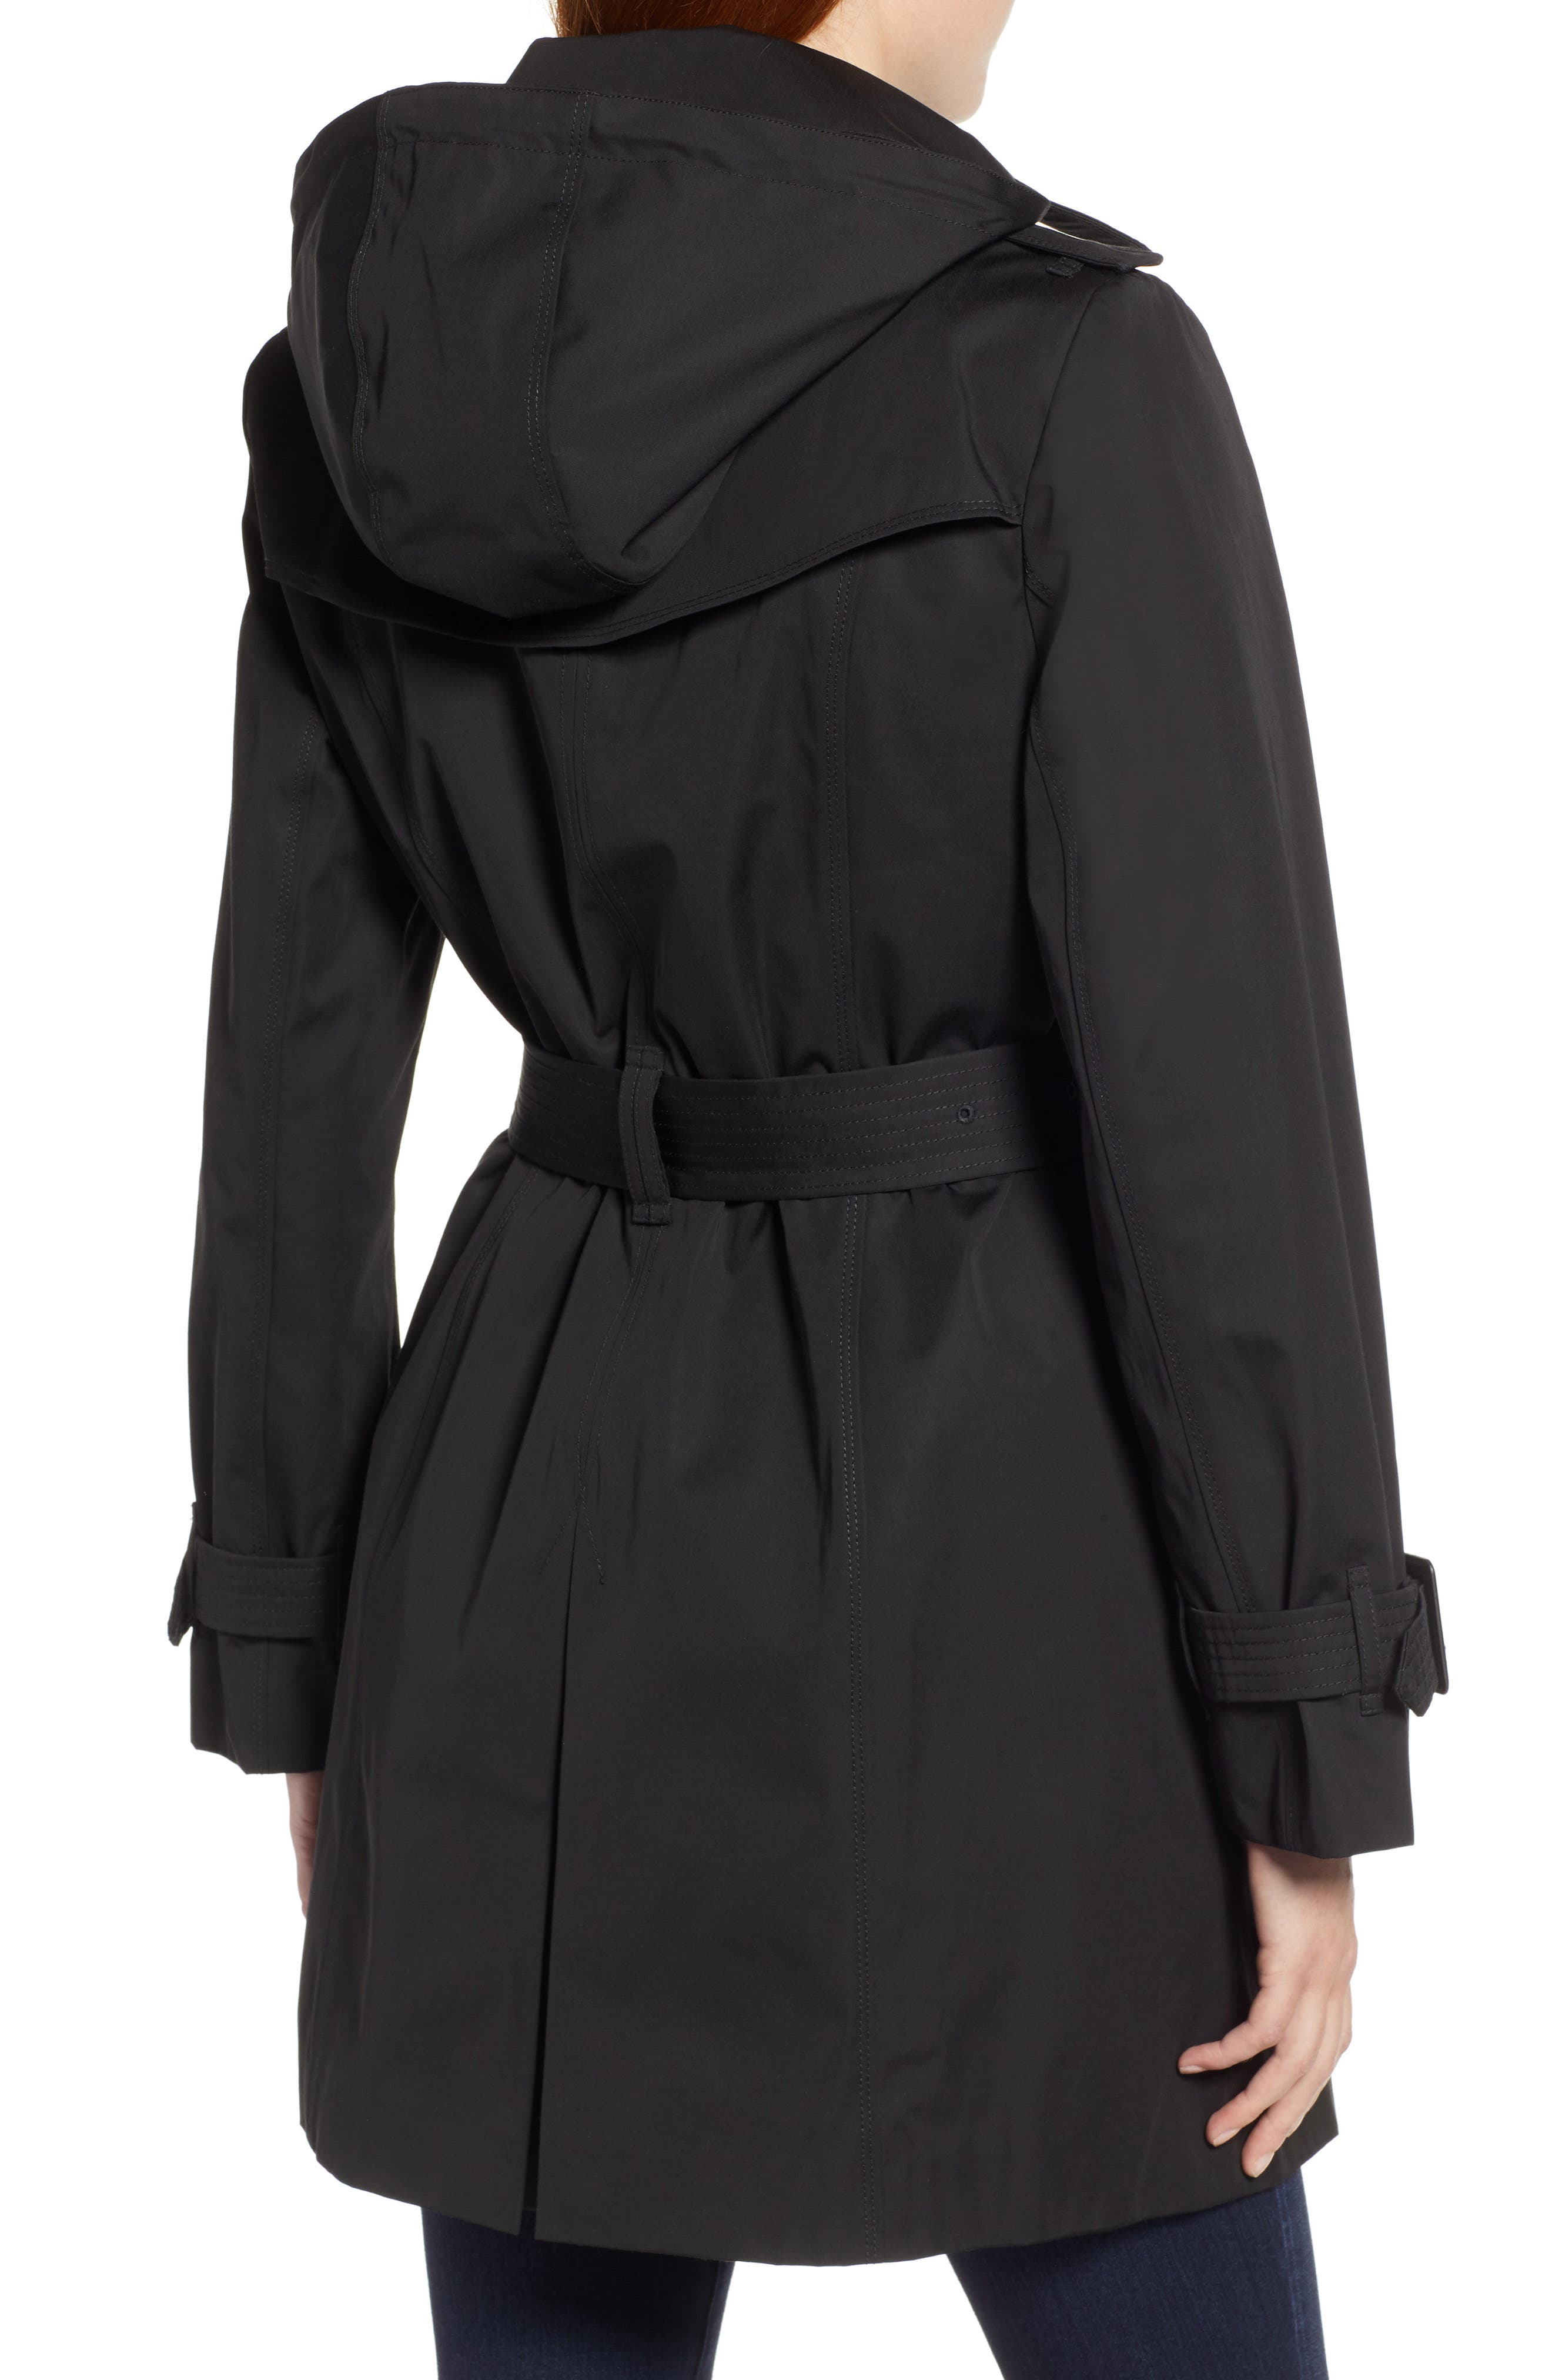 LONDON FOG, Trench Coat with Detachable Liner & Hood, Alternate thumbnail 2, color, BLACK